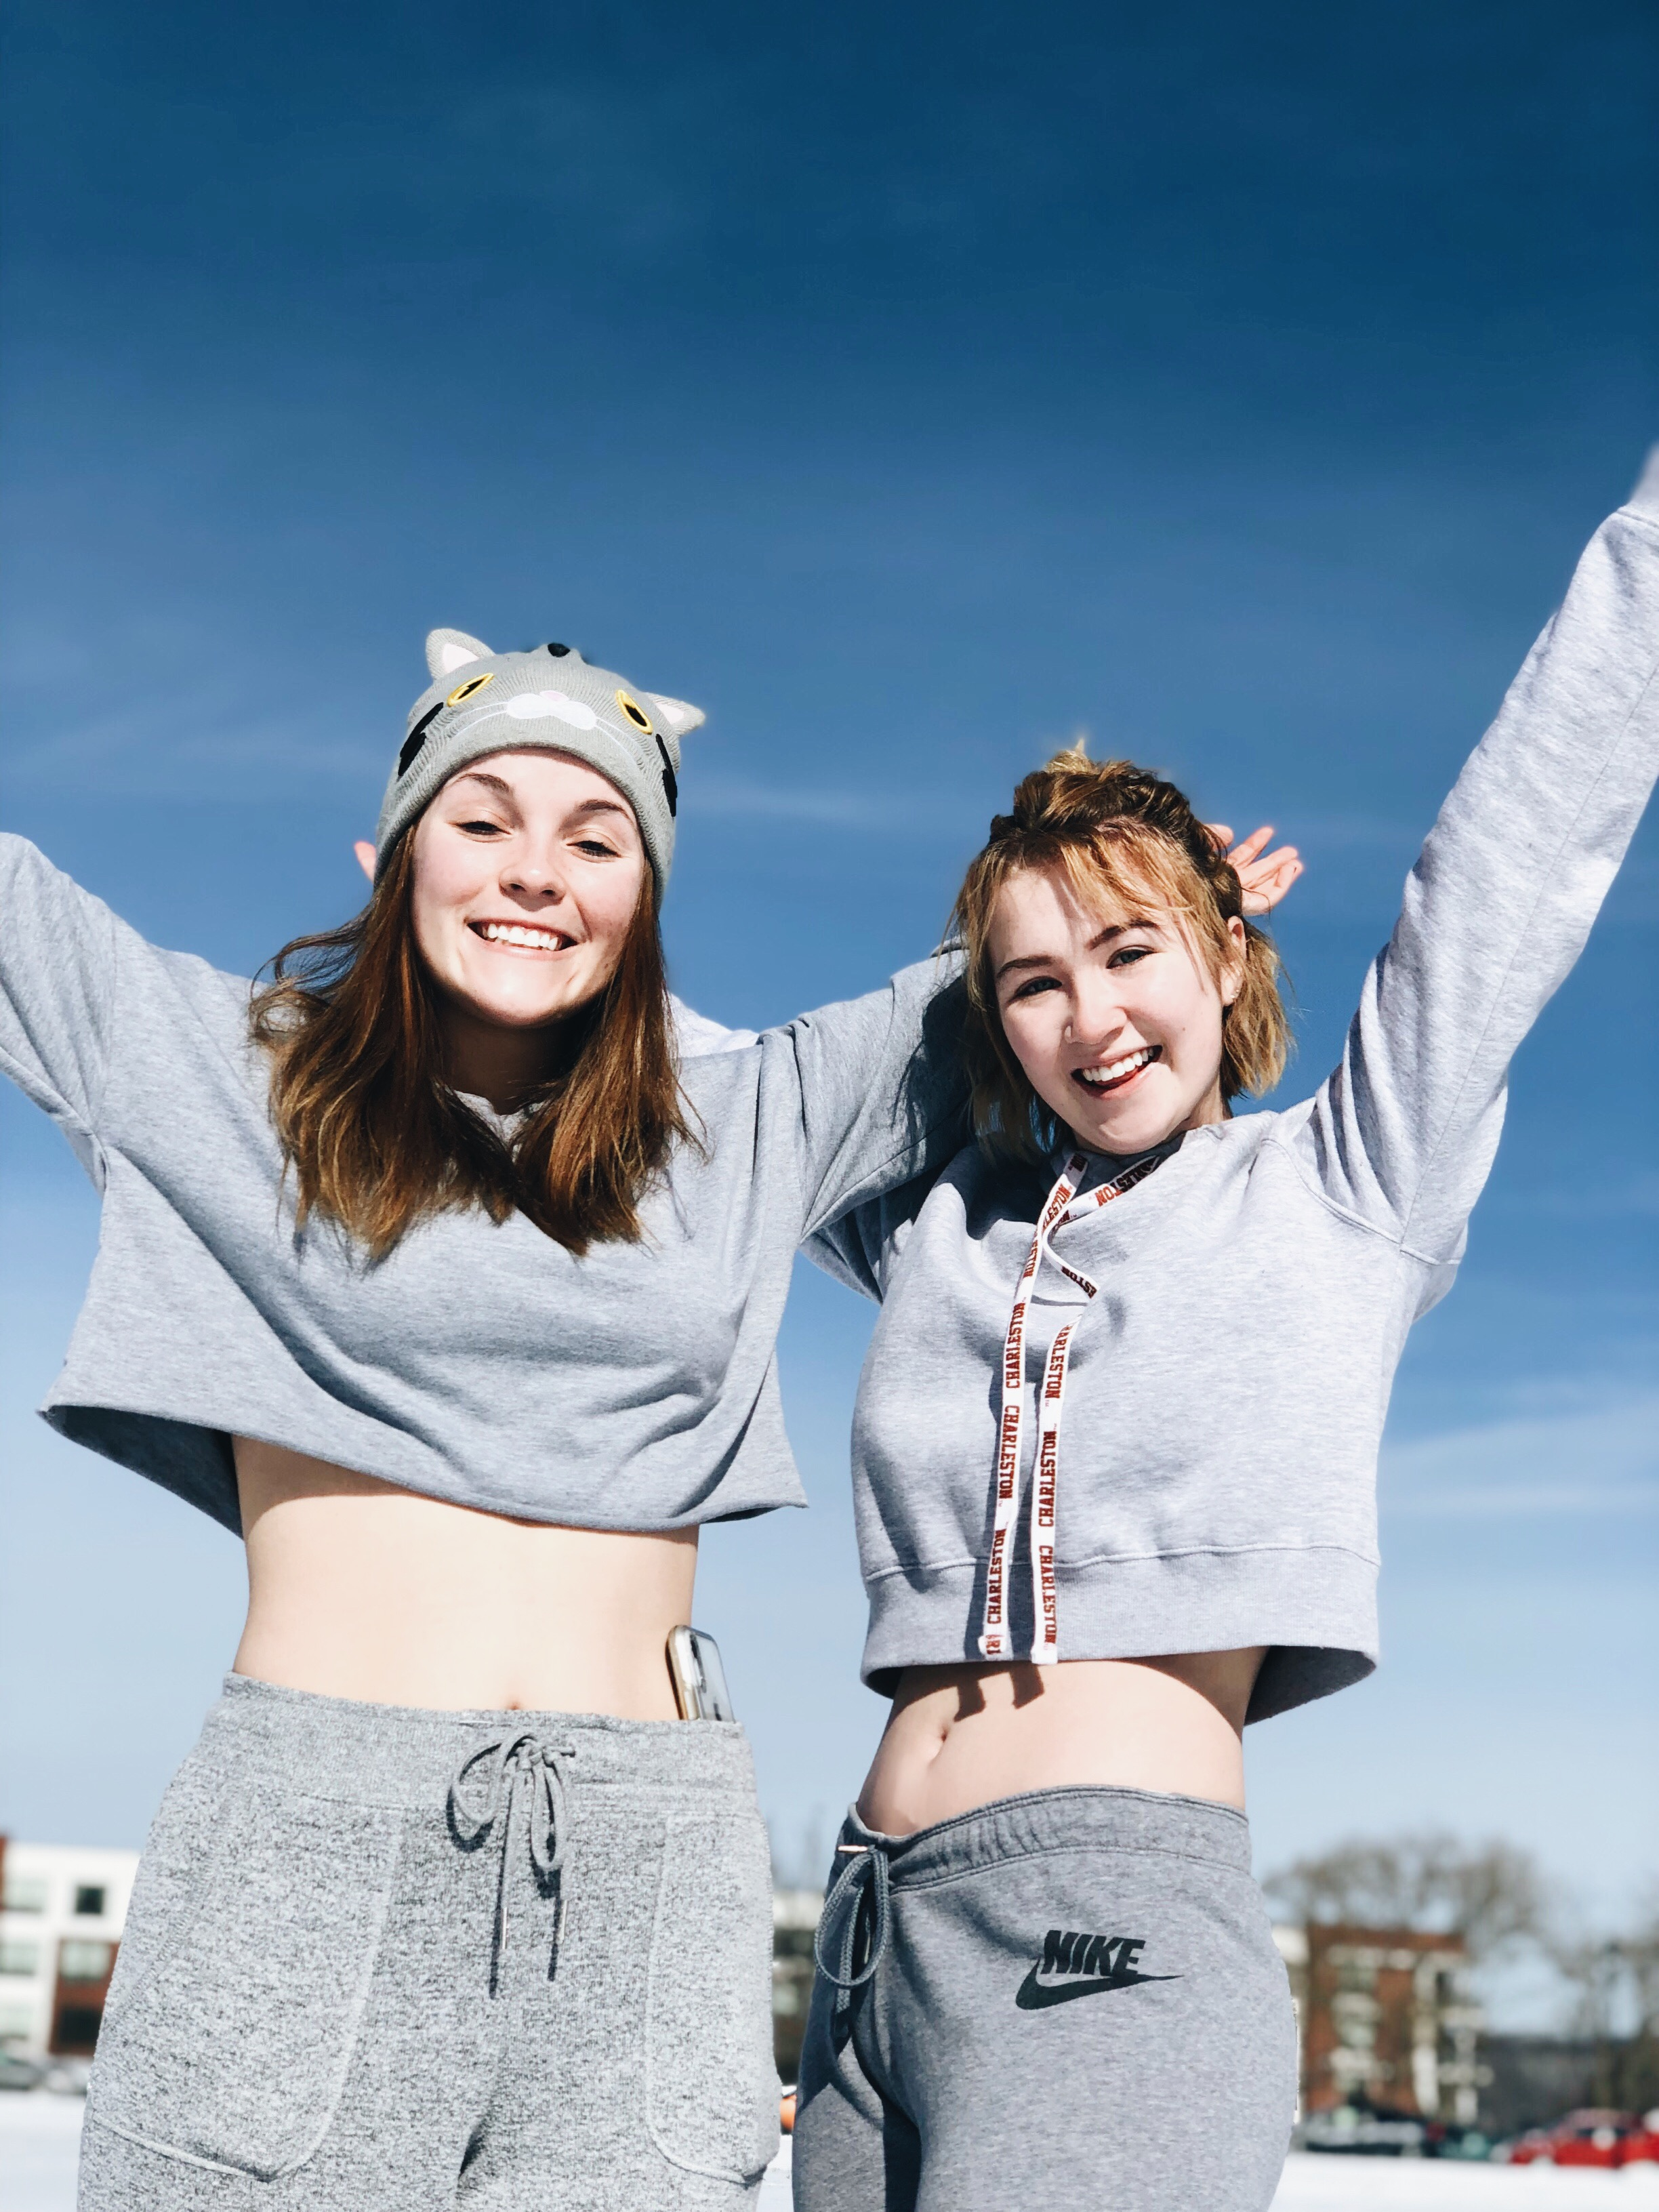 The Groutfit Lookbook: Is it Trendy?